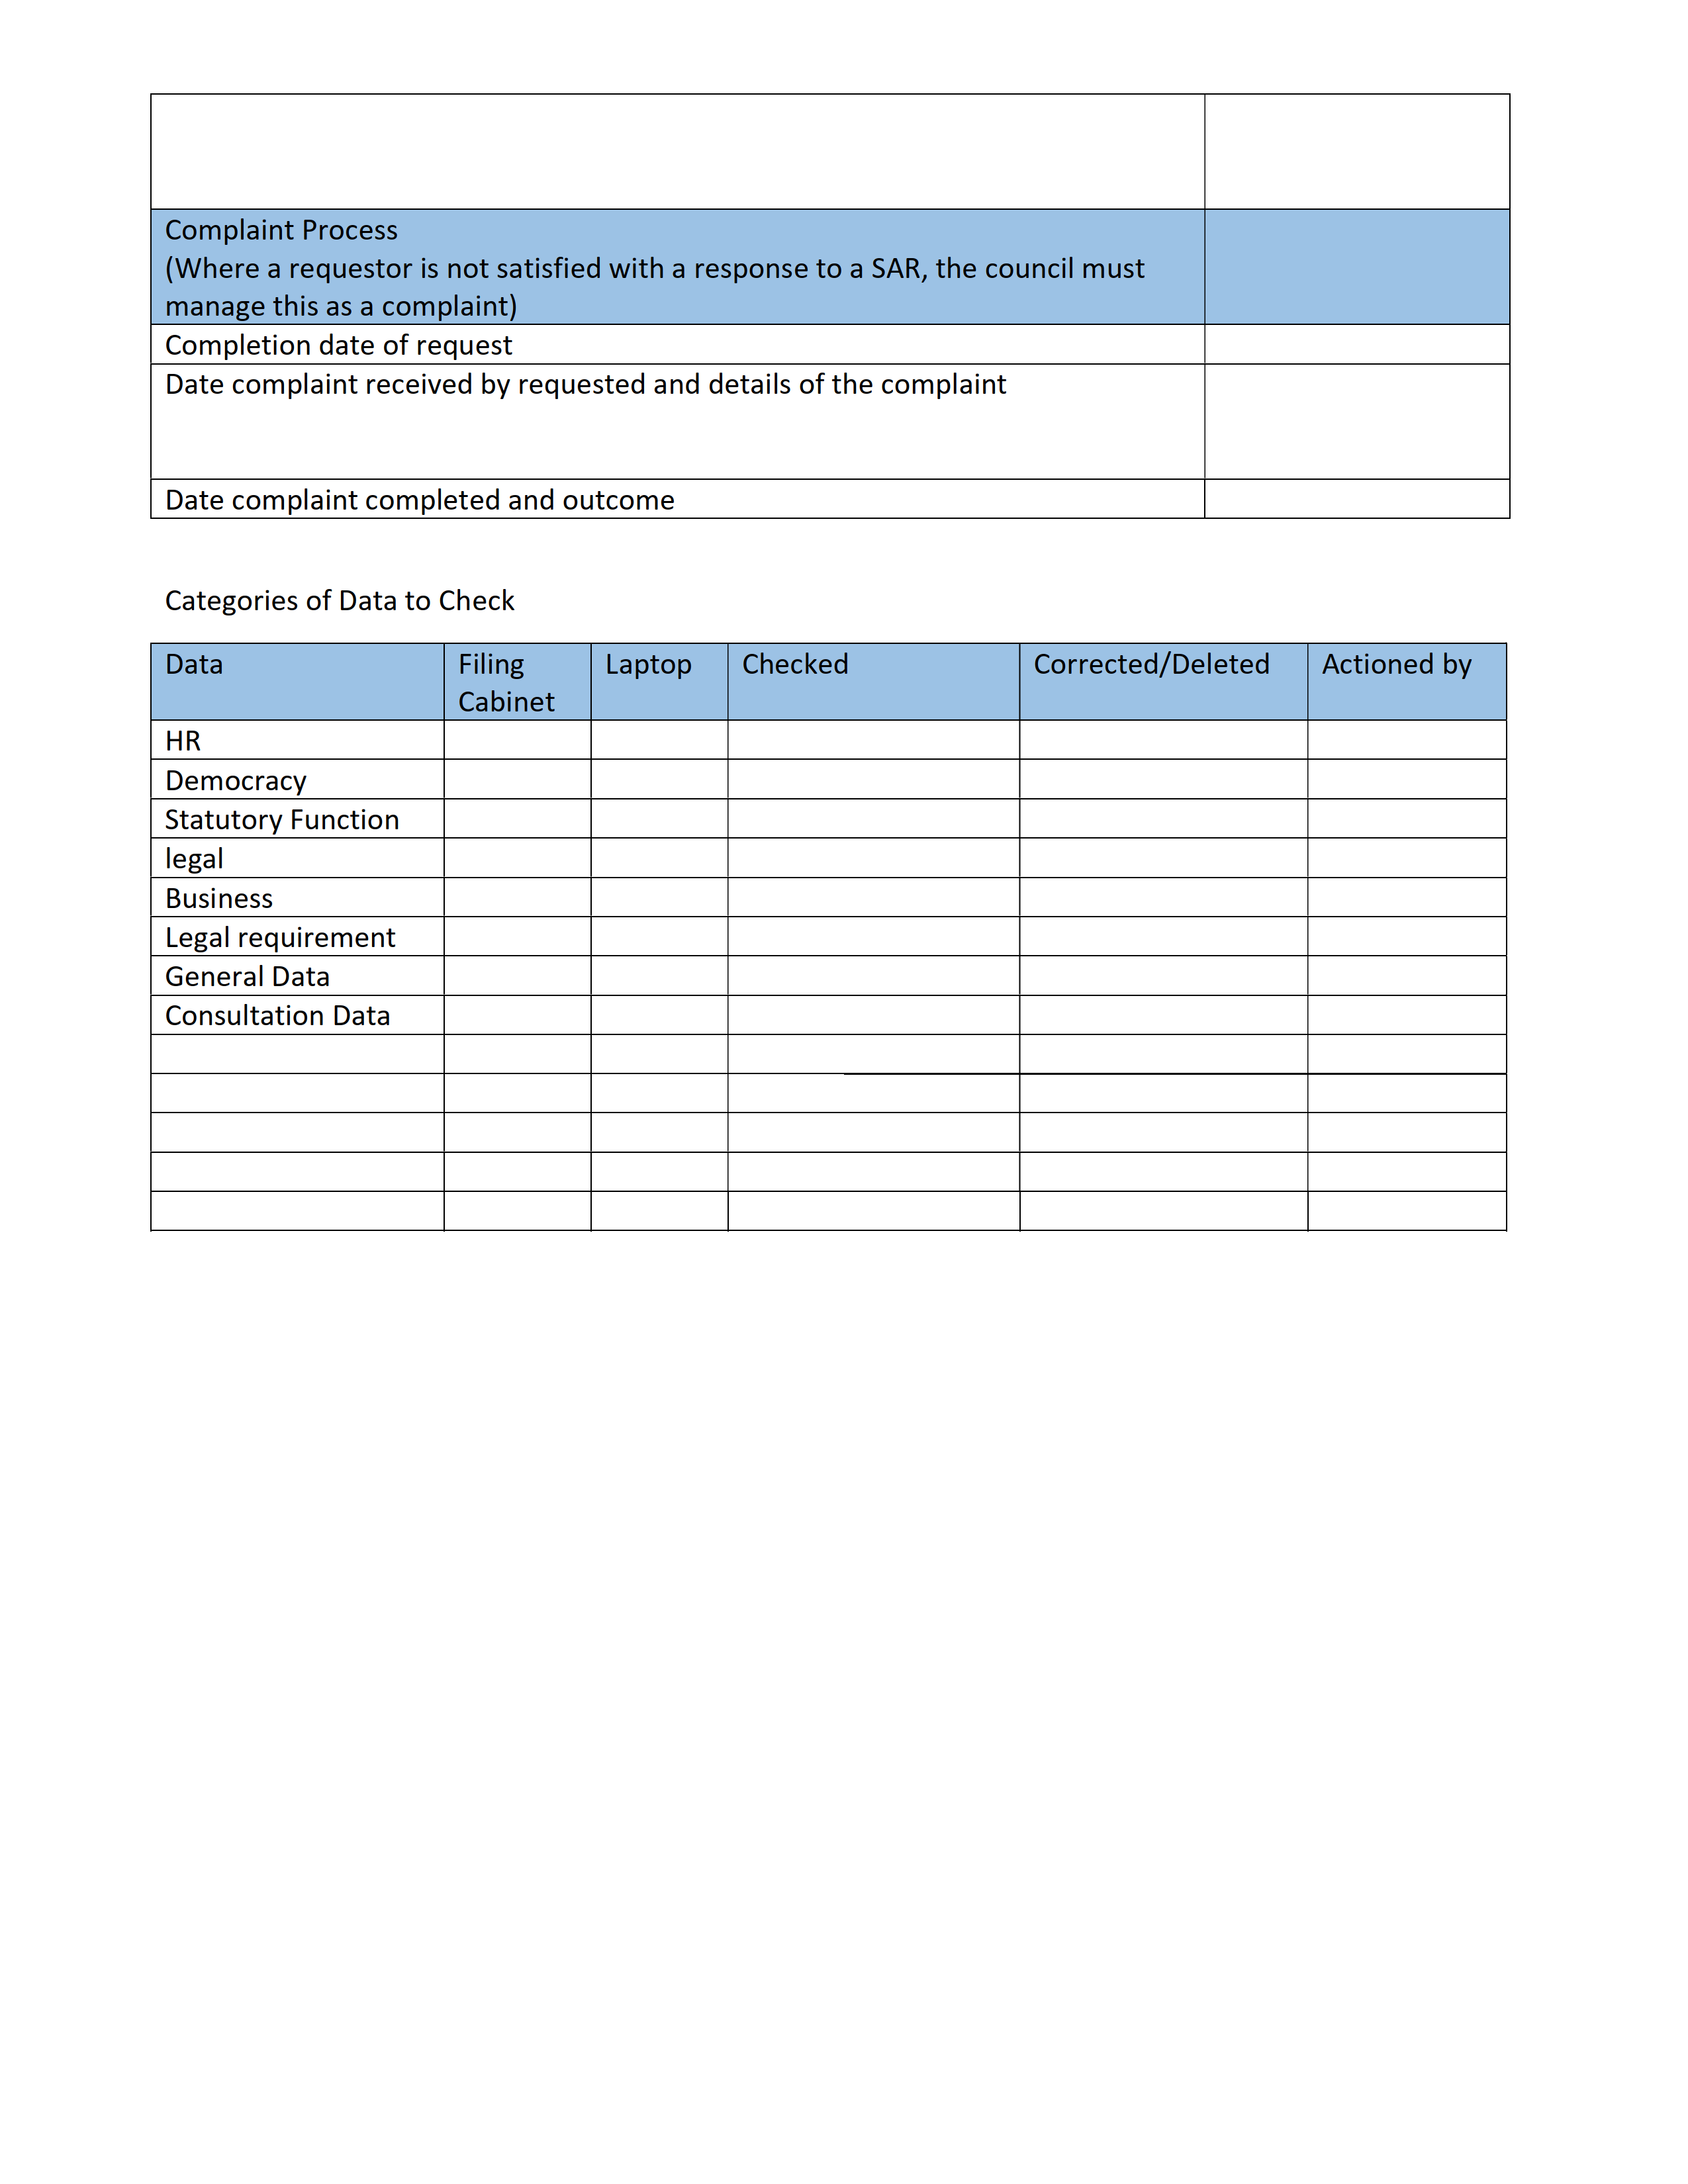 GDPR11_Subject_Access_Form2.png